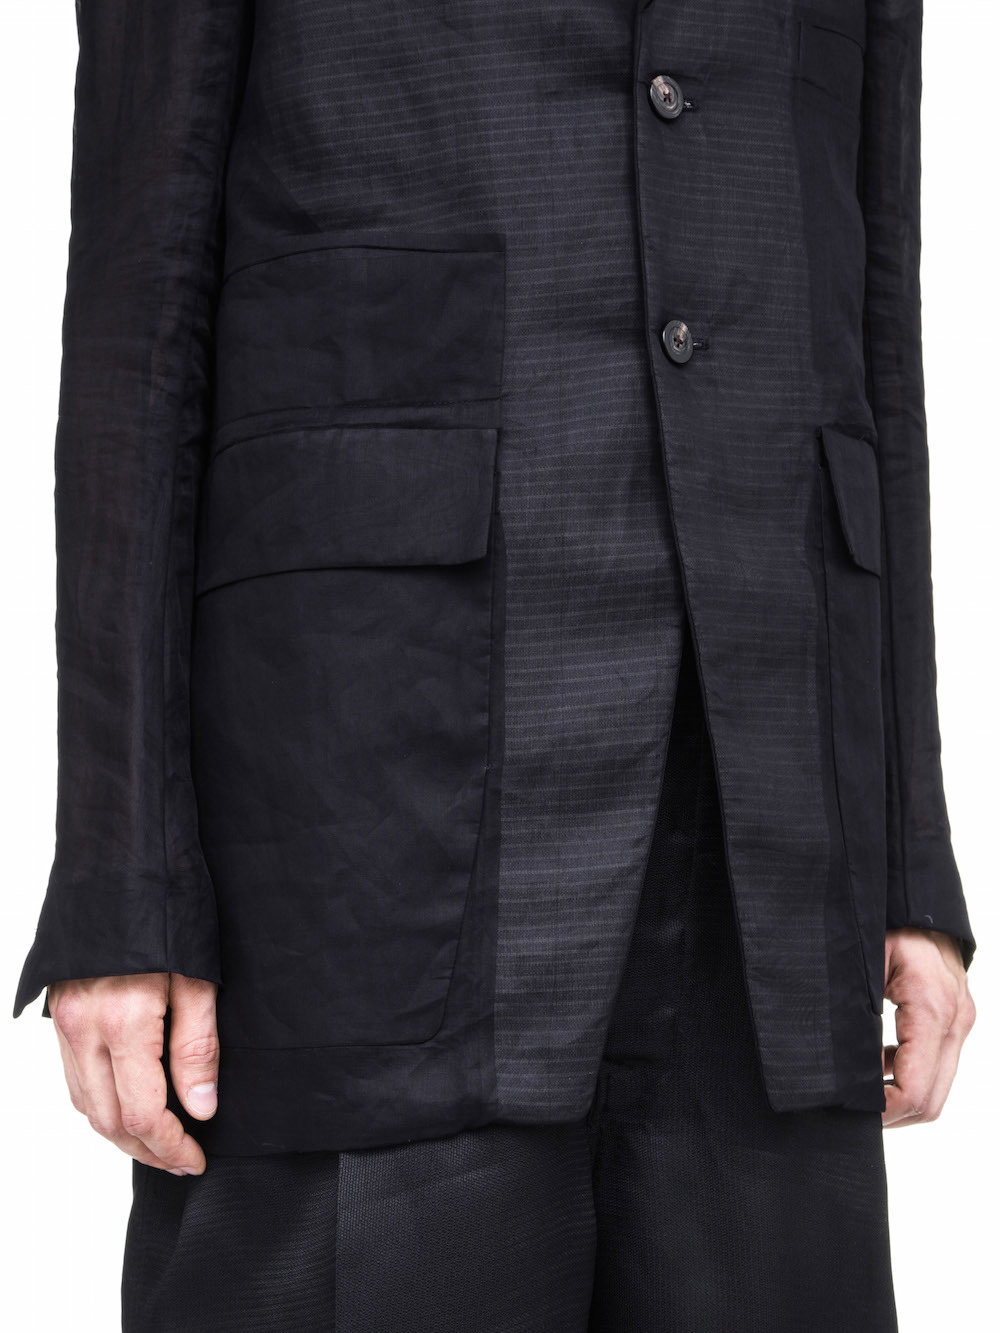 RICK OWENS MULTIPOCKET TAILORED JACKET IN BLACK COTTON